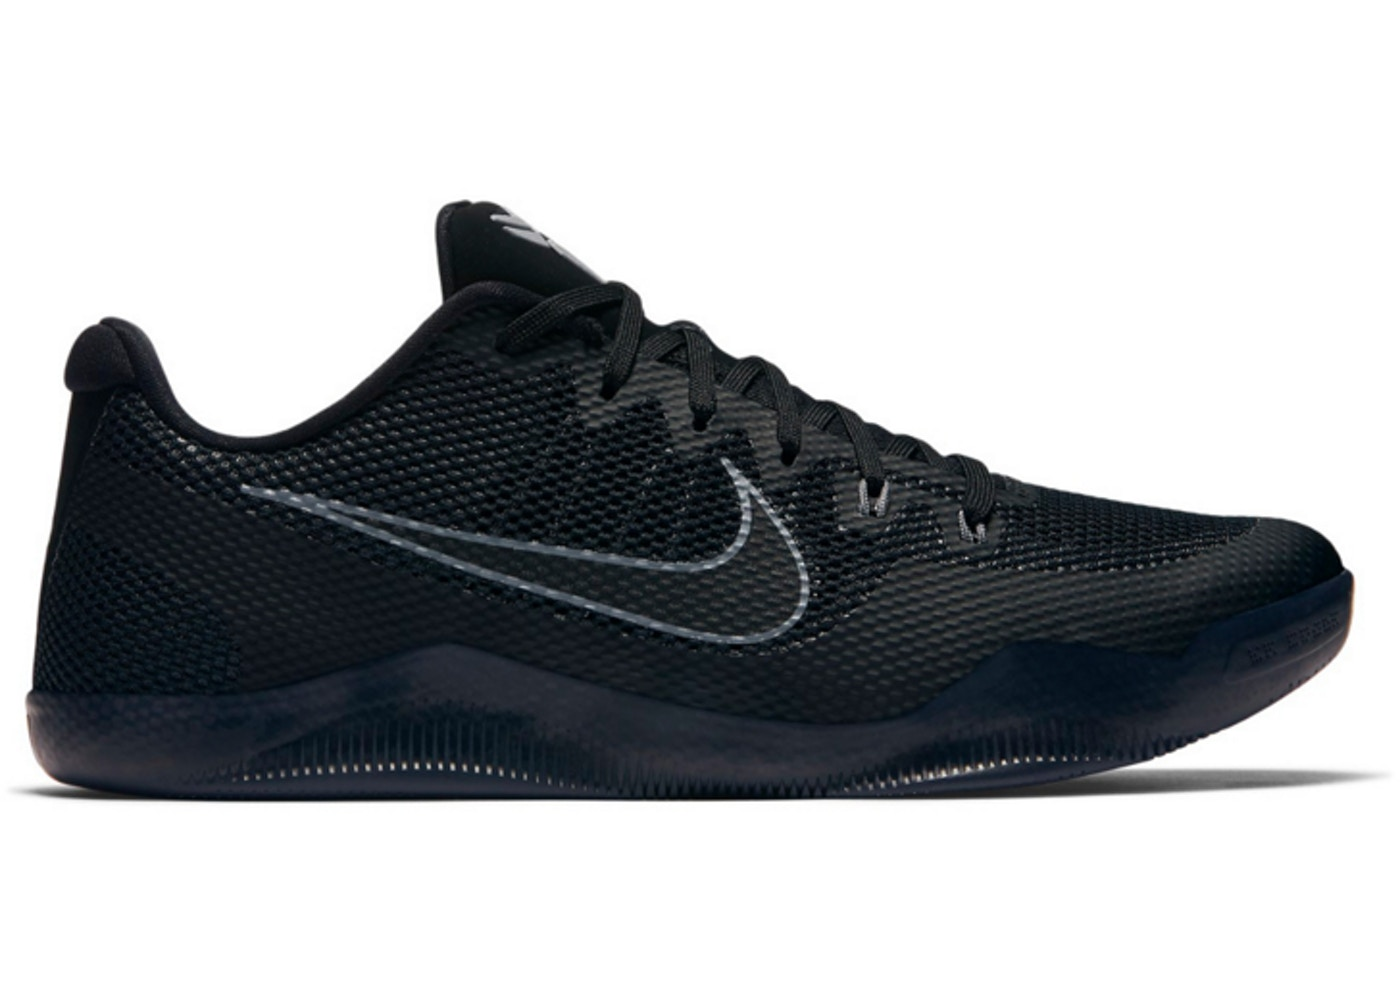 new concept 65178 17d82 Kobe 11 EM Low Black Cool Grey